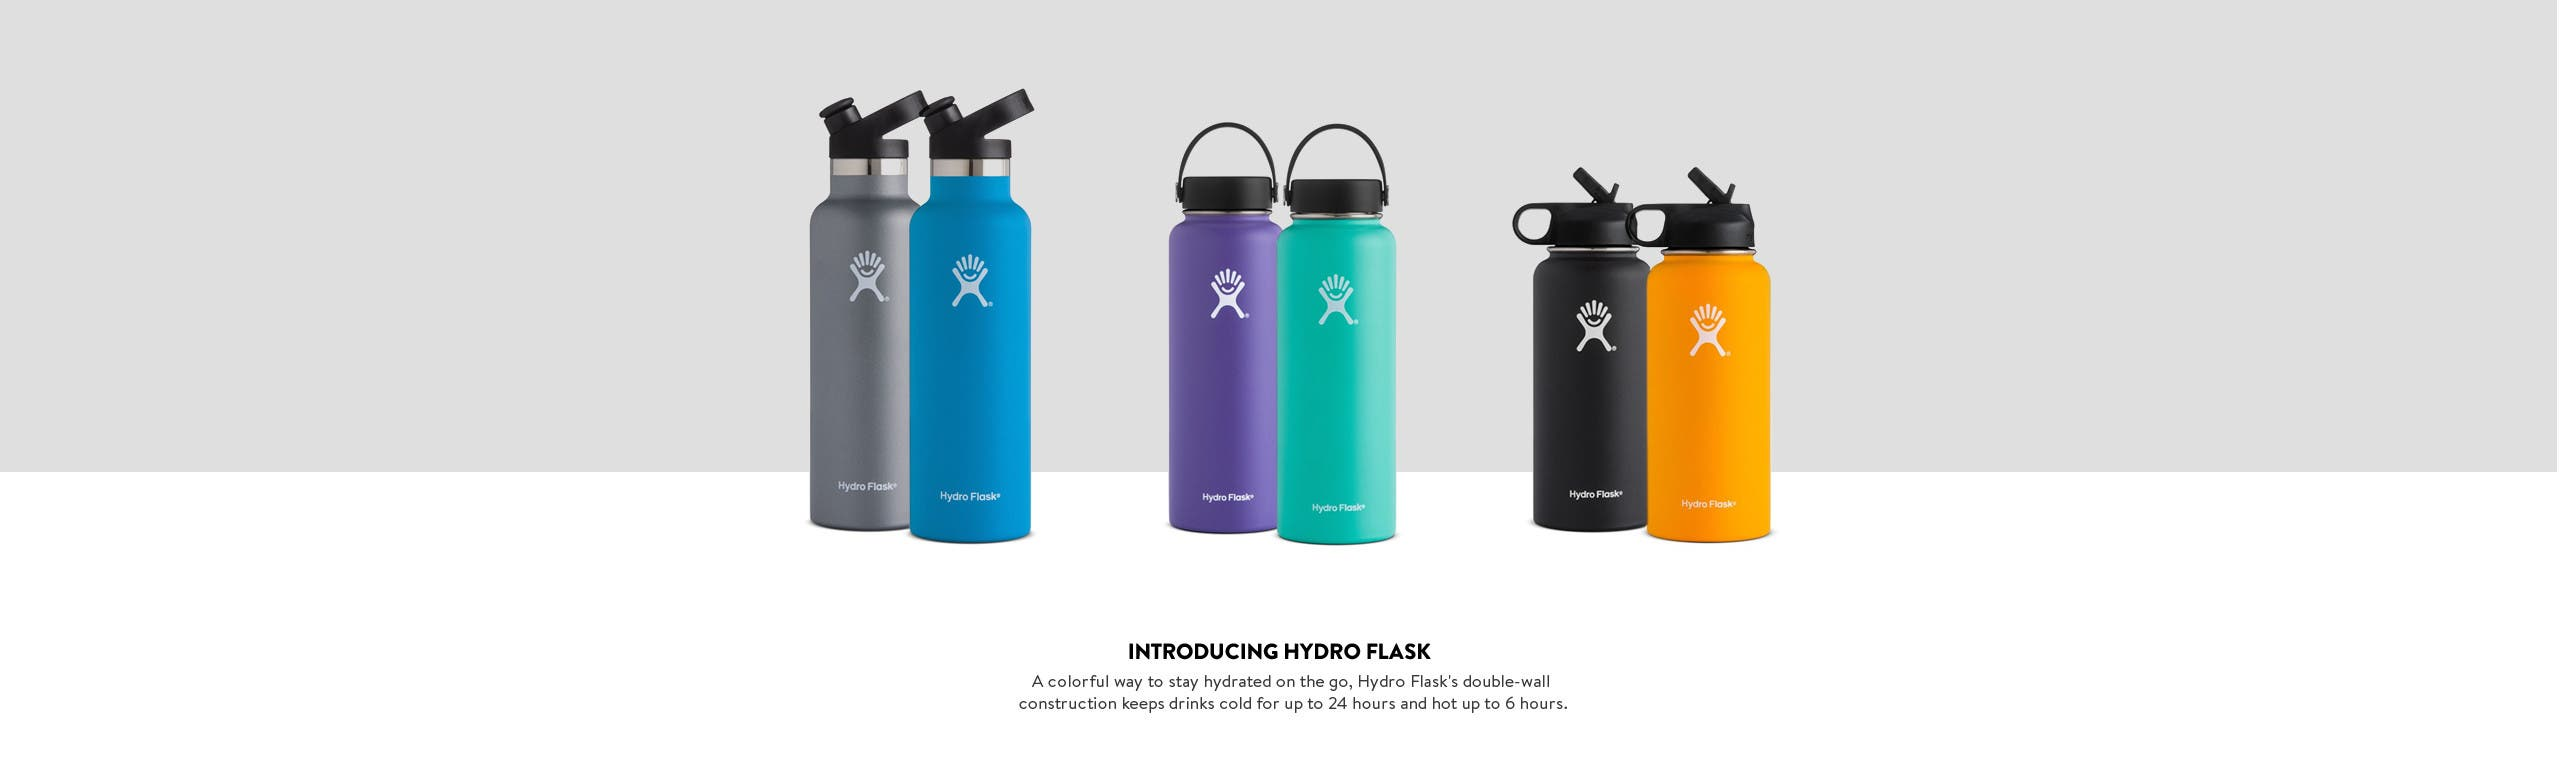 Introducing Hydro Flask water bottles.